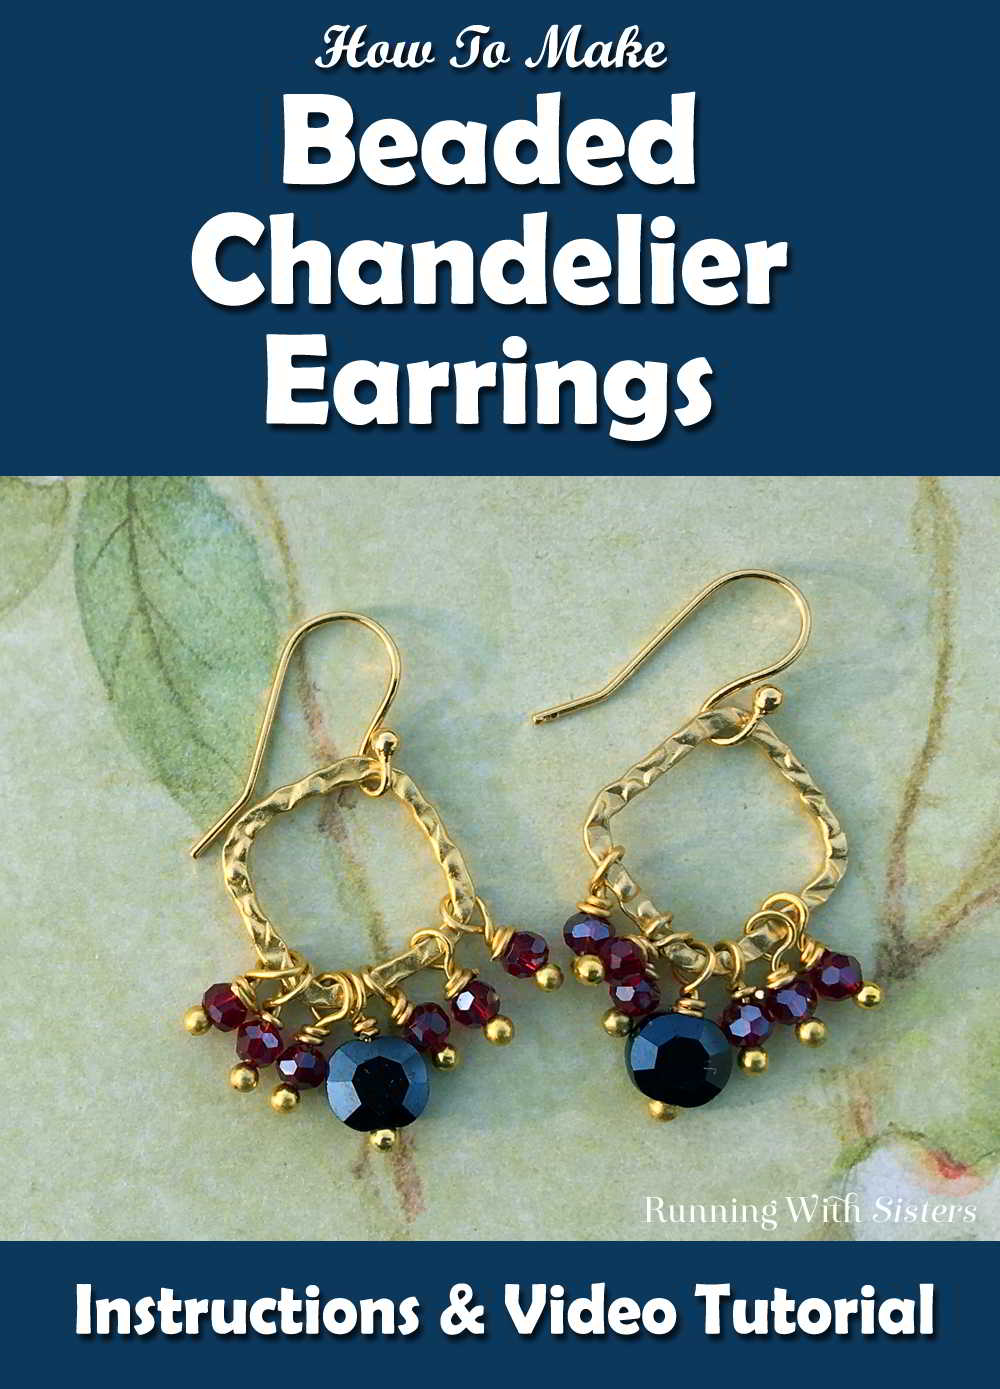 Learn to make these pretty Beaded Chandelier Earrings! In this video tutorial we'll show you how to make a wrapped loop to create the bead dangles. Come craft with us!